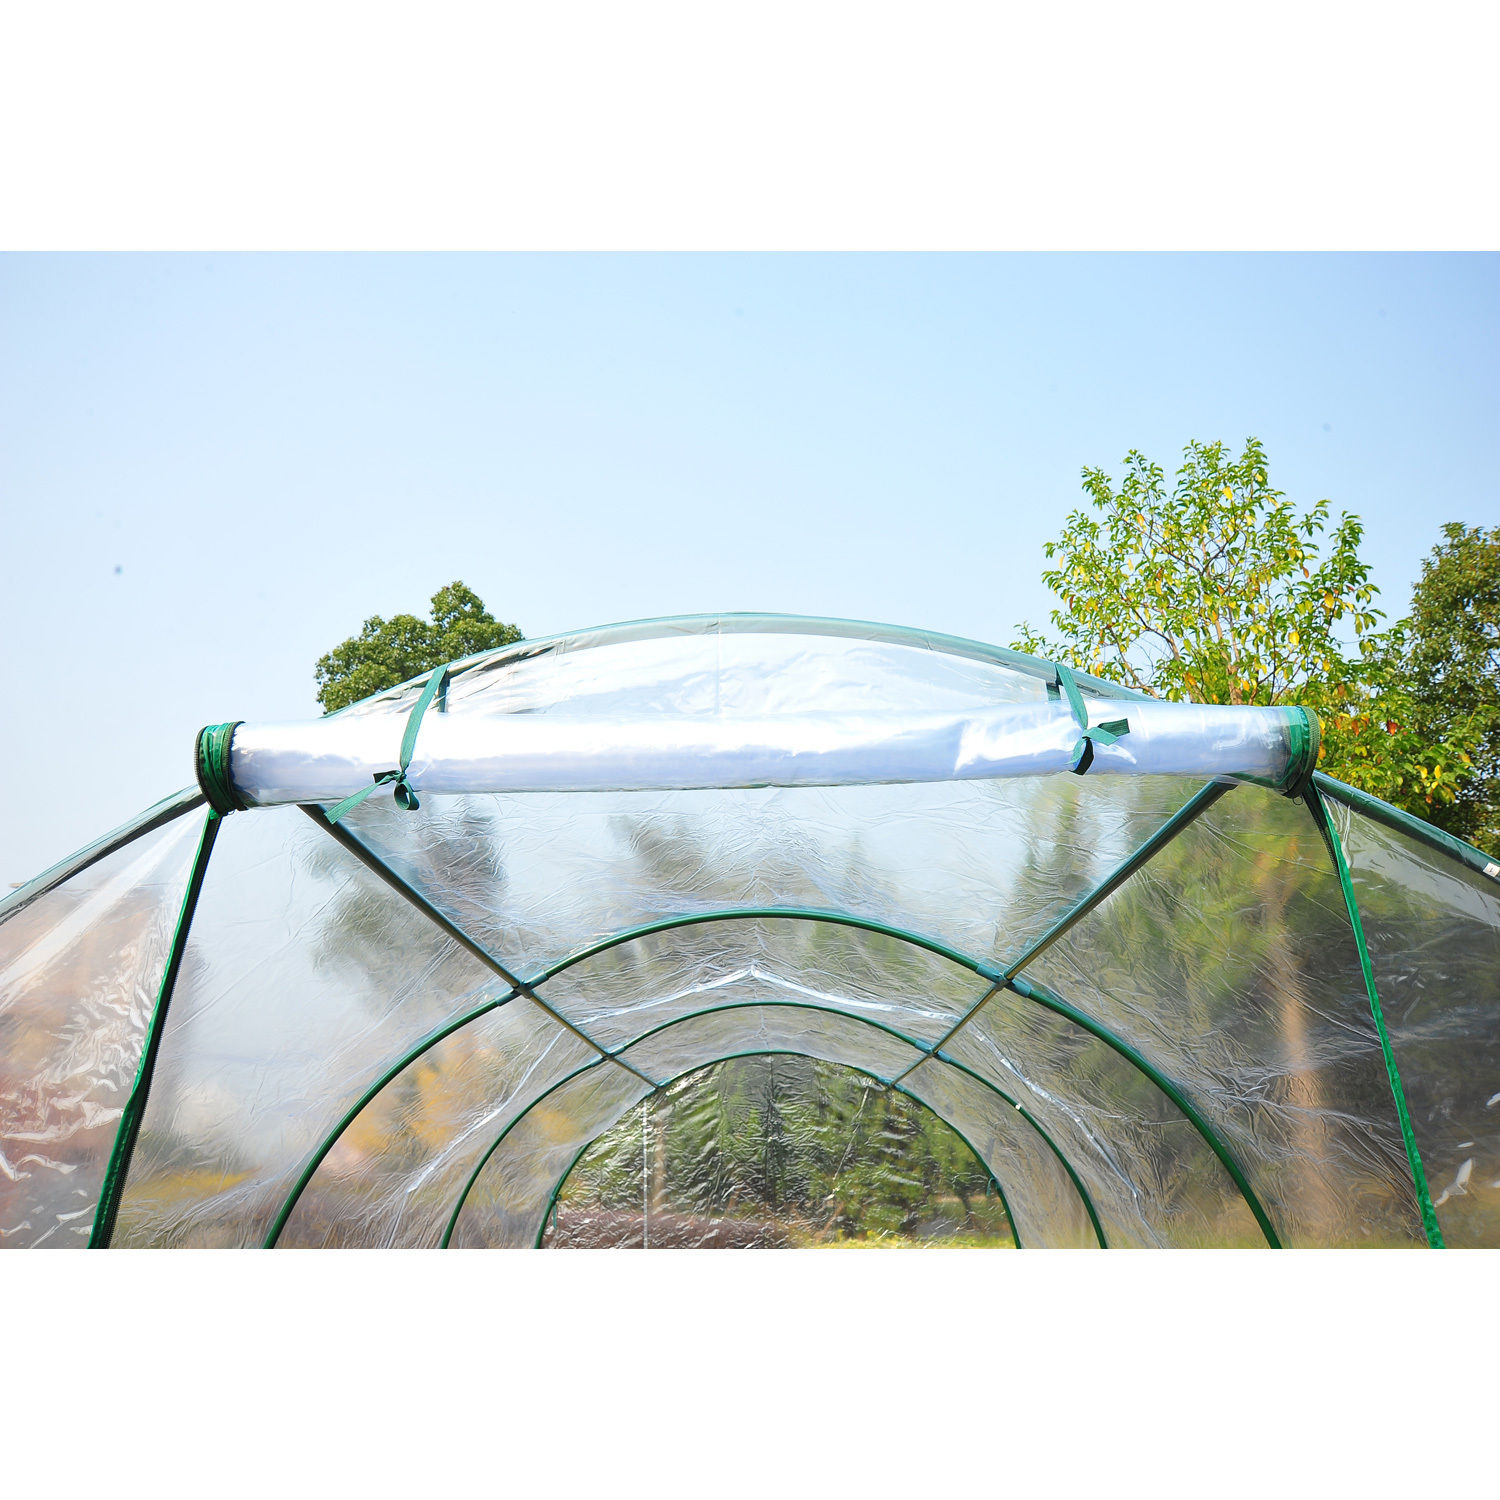 Transparent-Polytunnel-Greenhouse-Poly-Tunnel-Green-House-Steel-Frame-PVC-Cover thumbnail 16